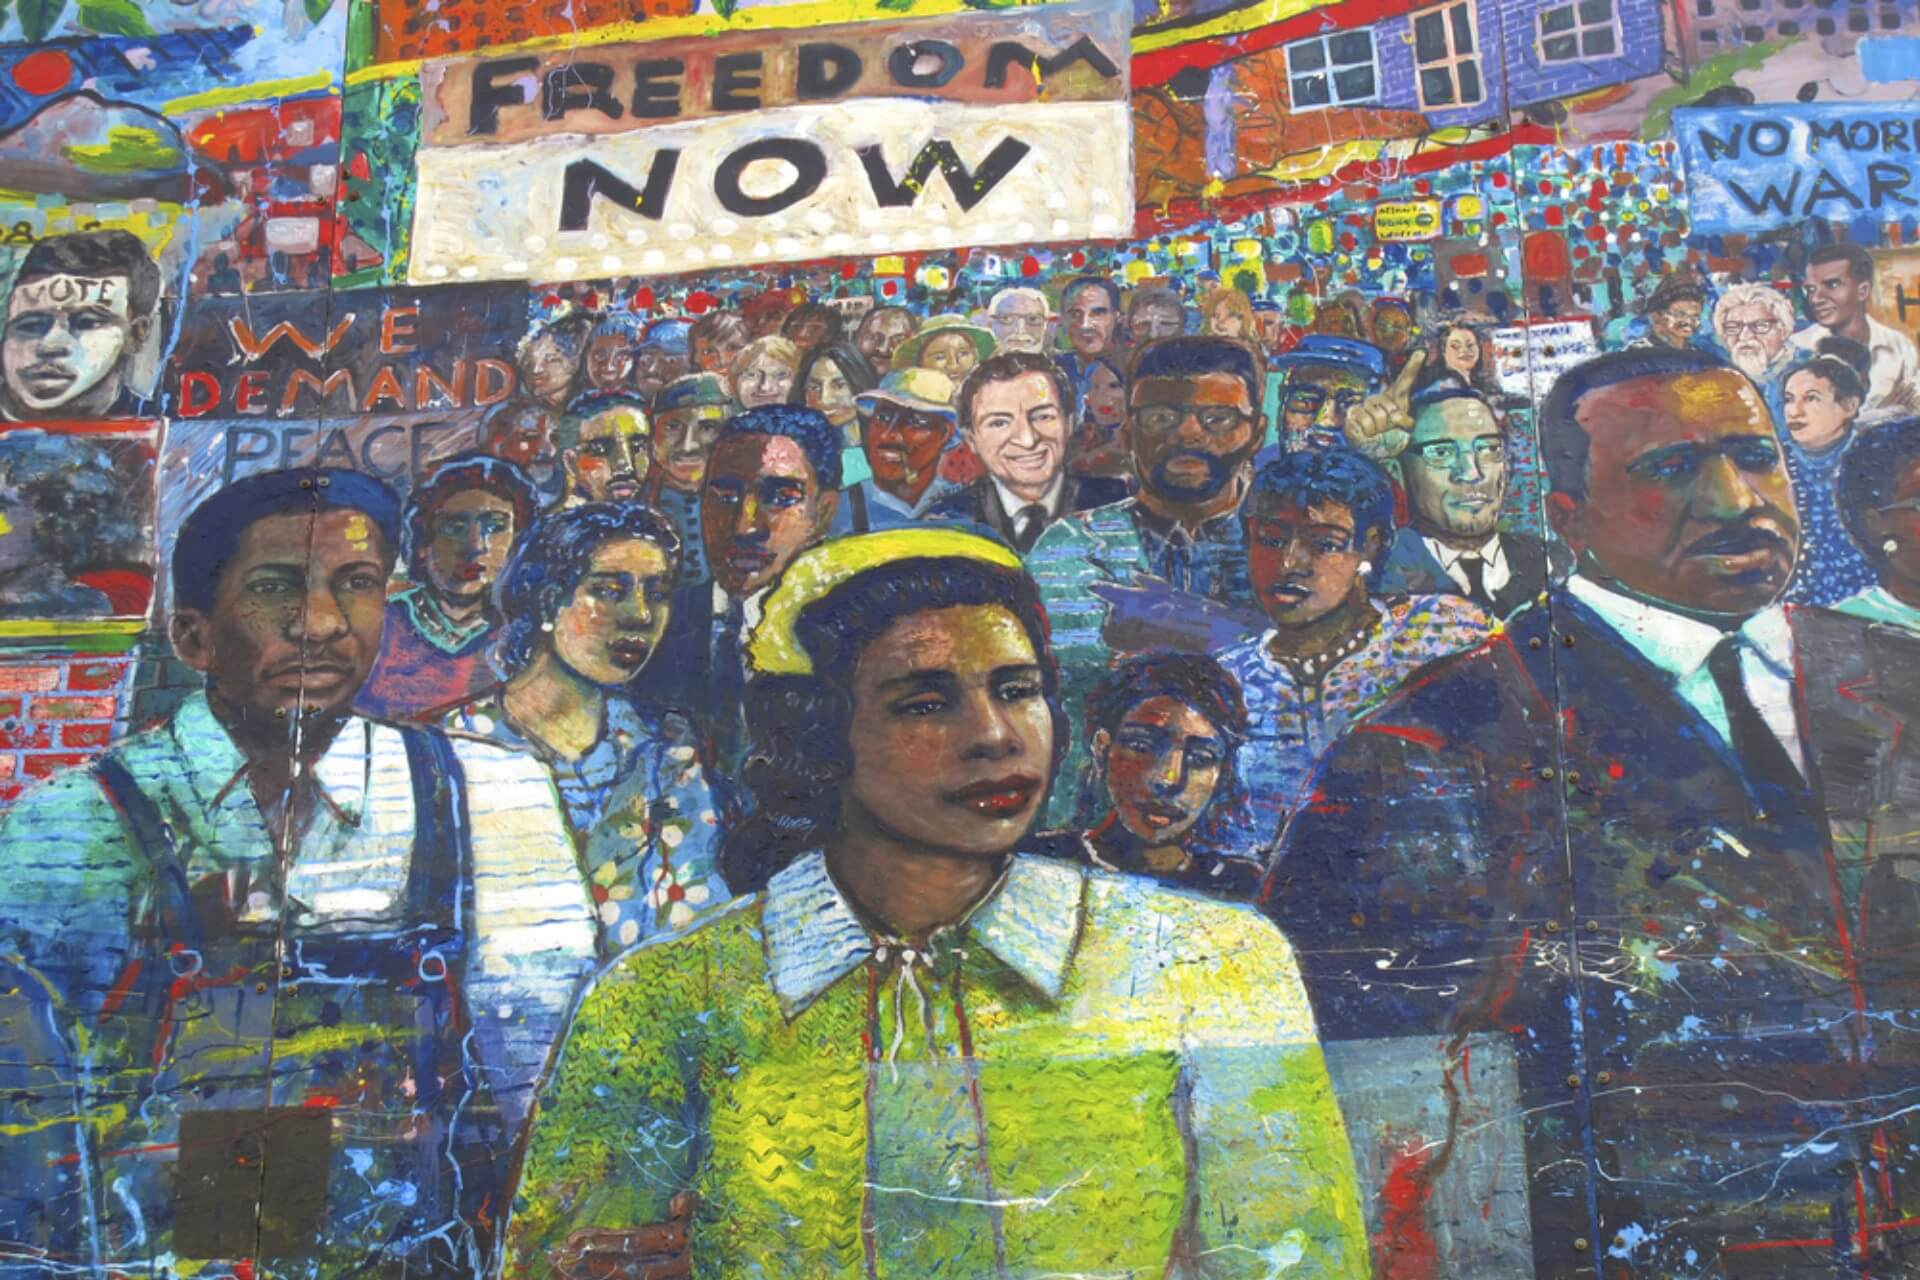 A mural if a woman and a crowd on a wall in Atlanta.